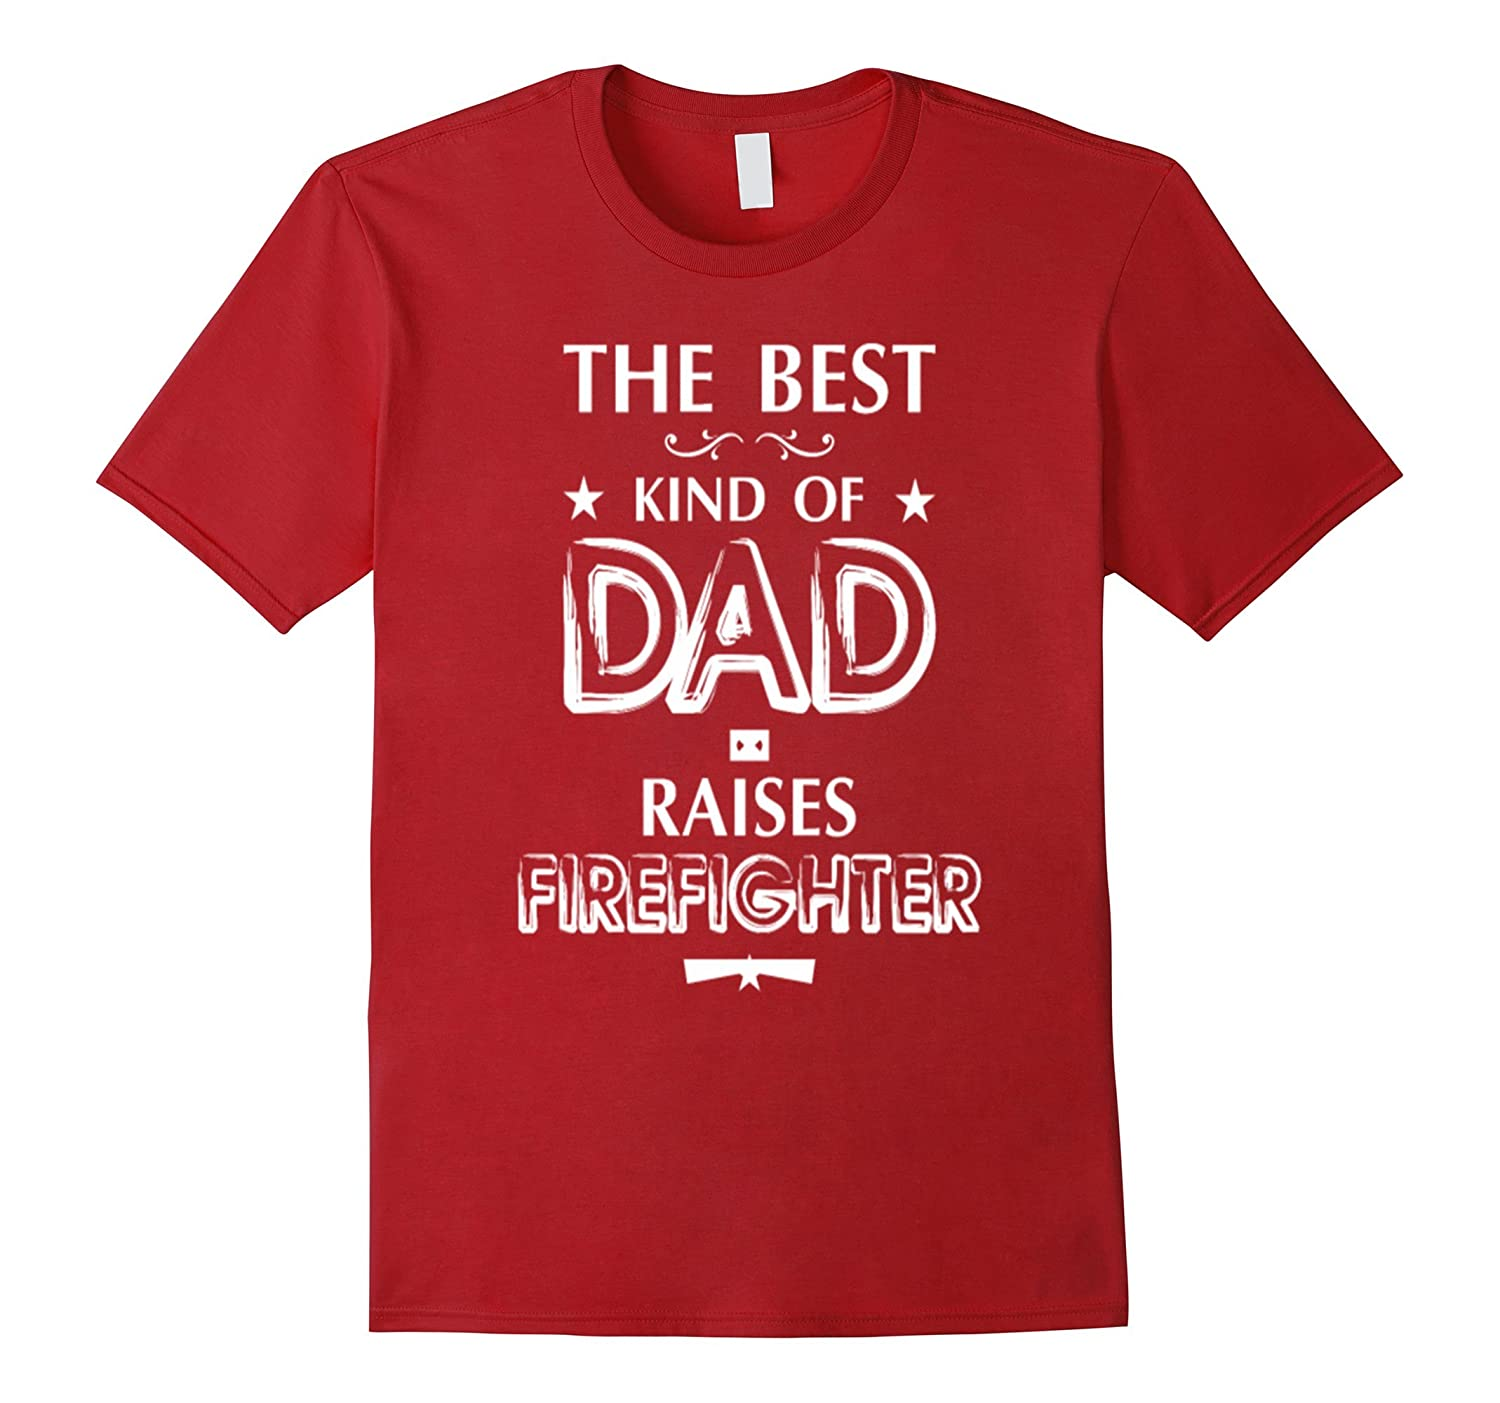 The Best Kind Of Dad Raises Firefighter T-shirt